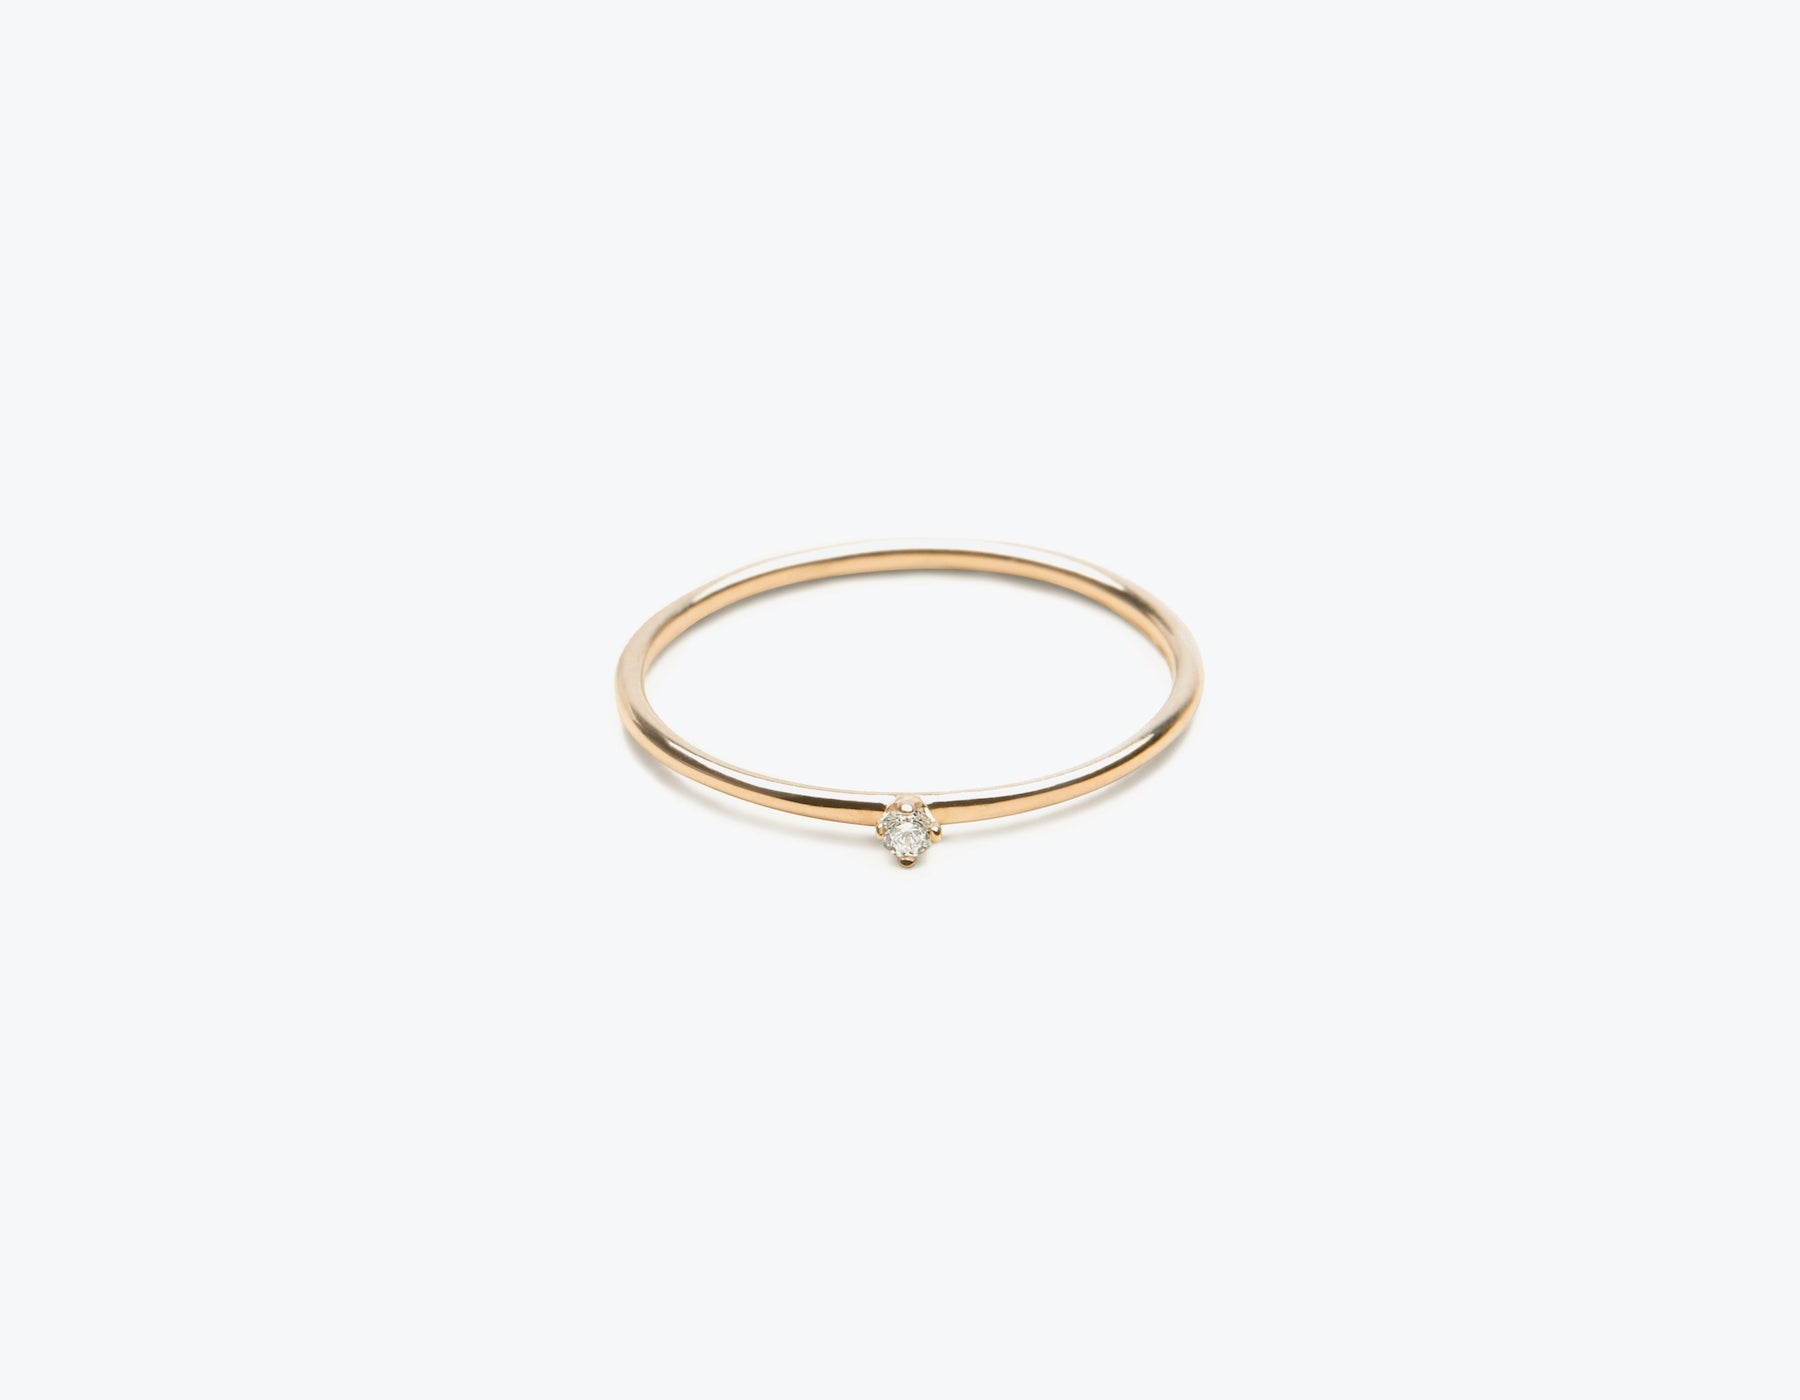 Classic minimalist 14k solid gold small Round Diamond Stacker ring by Vrai and Oro, 14K Rose Gold